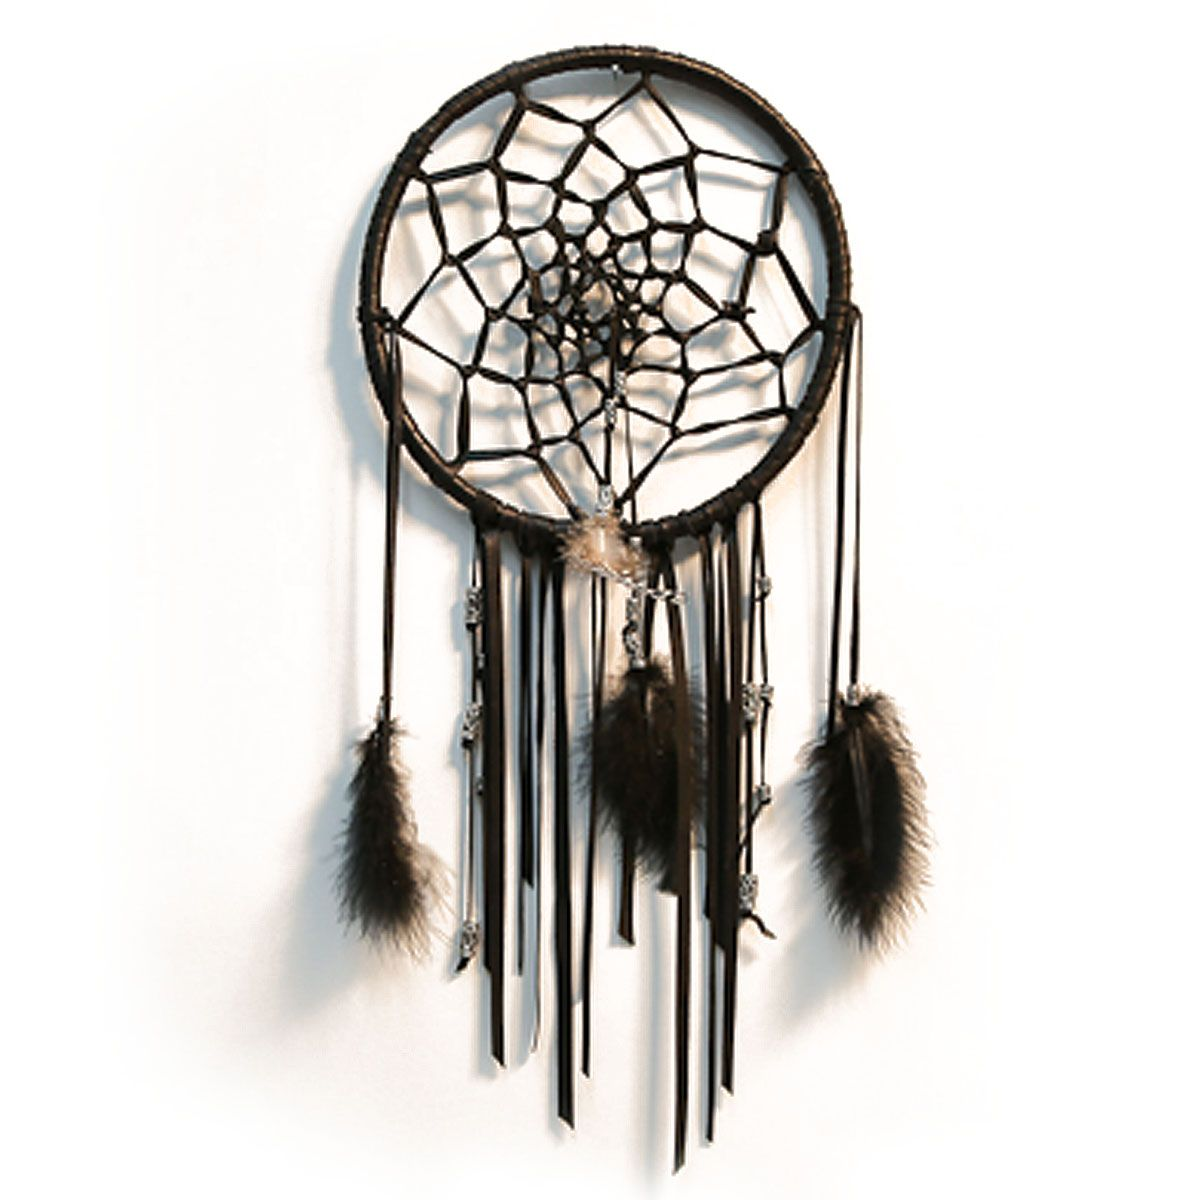 From my living room greenpoint works acapulco chair in leather meets - Black Leather Dreamcatcher Silver Beads Feathers Made At Line Label In Greenpoint Brooklyn